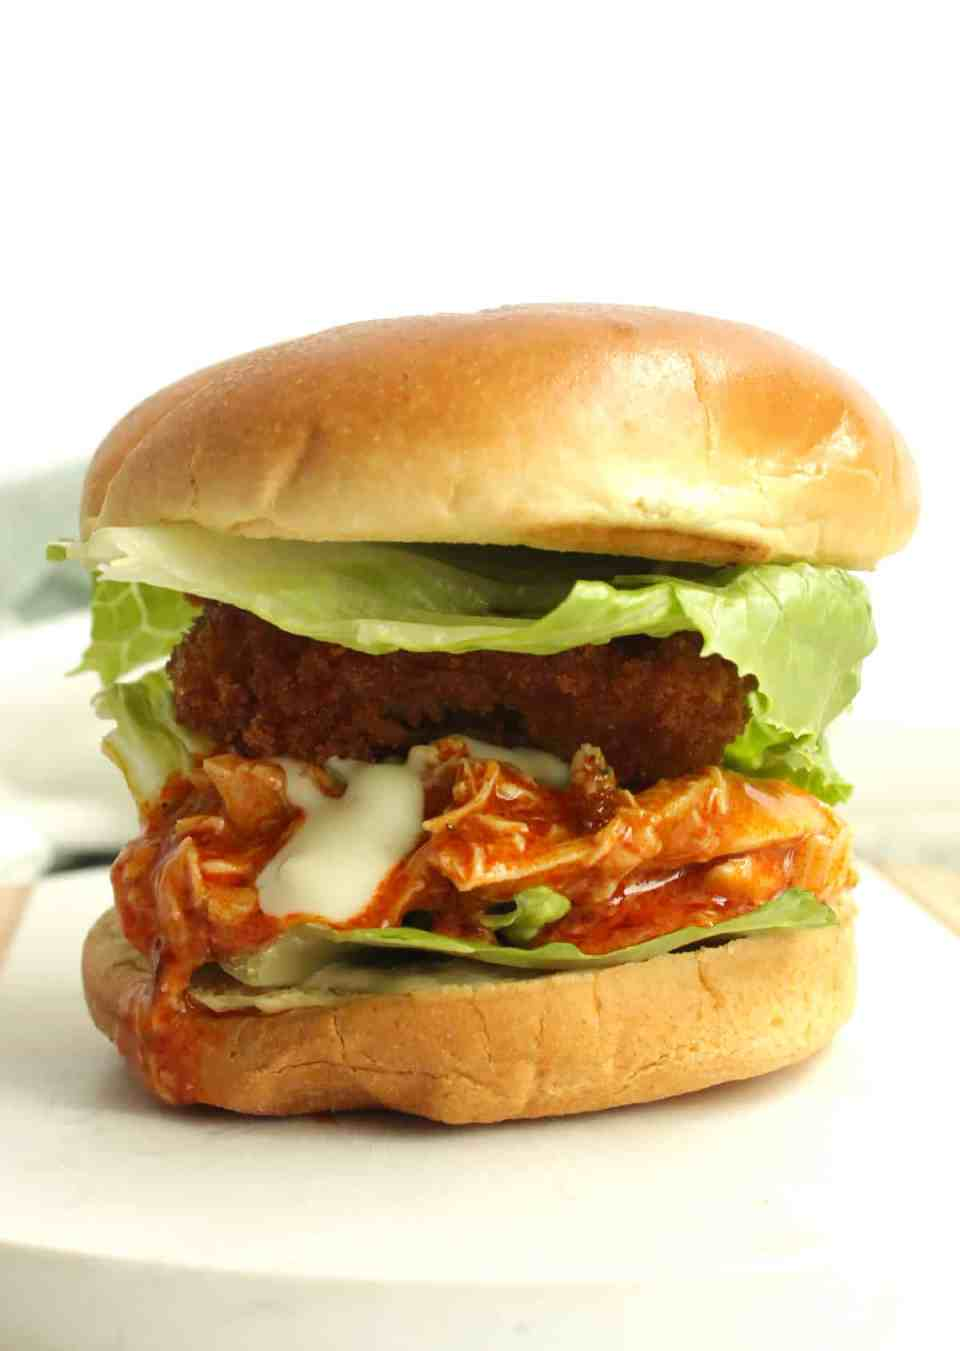 A shredded buffalo chicken sandwich ready to serve